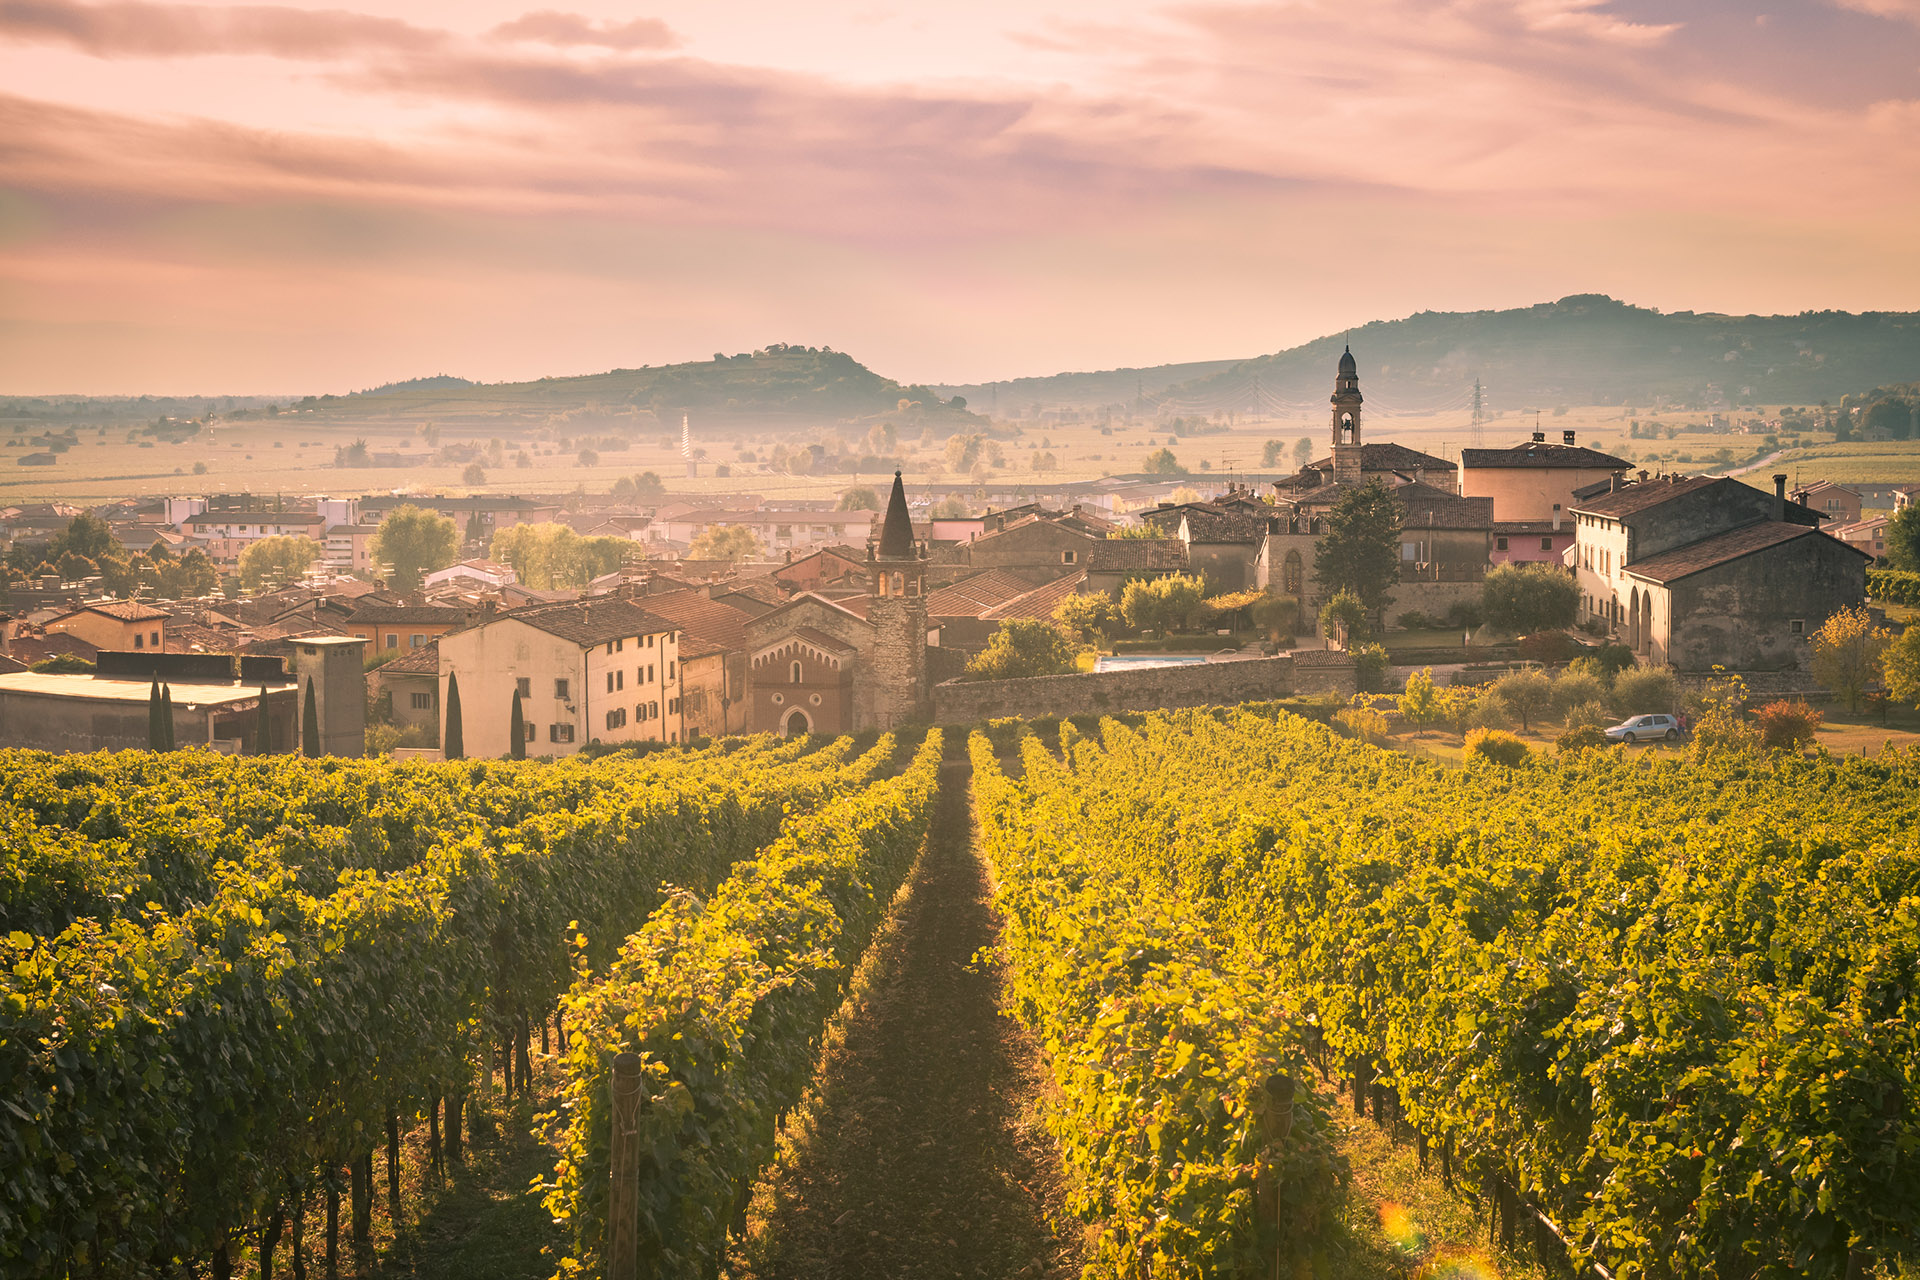 Vineyards in foreground, hazy Italian town in background